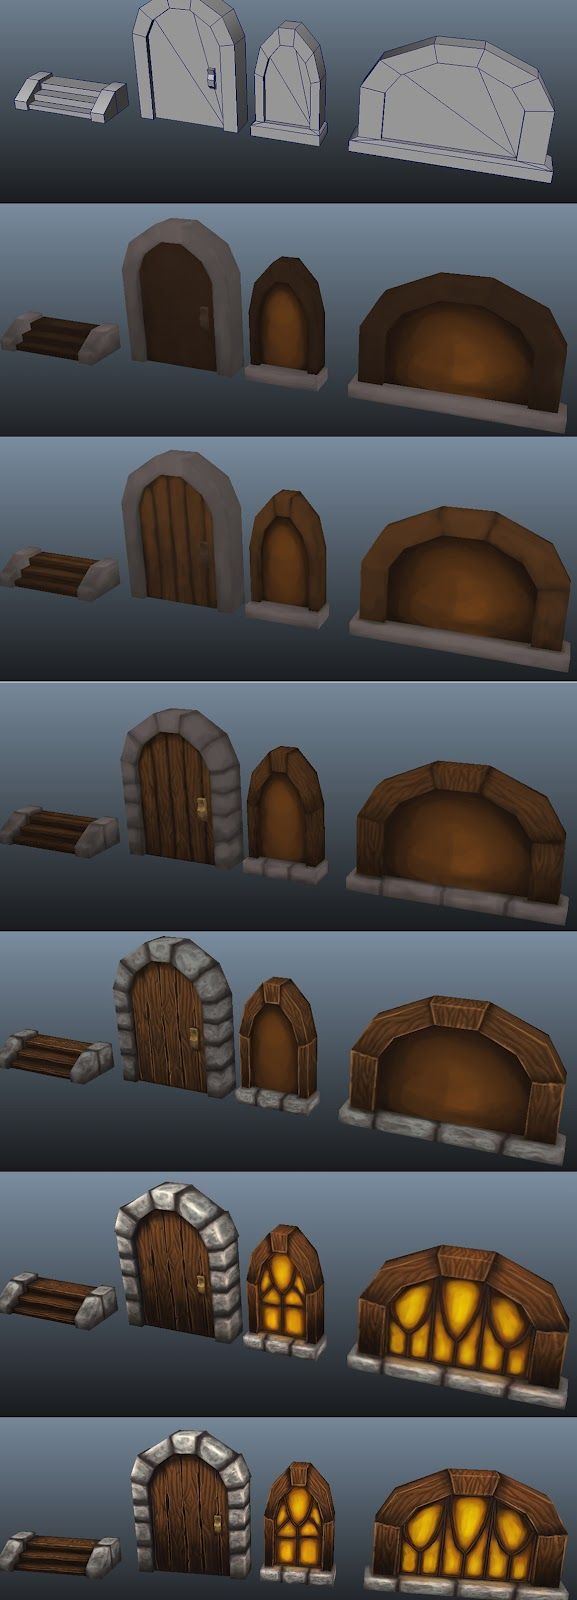 OJ ENVIRONMENT ARTIST BLOG: Blizzard Styled Texture Painting & Modular Building Exercise